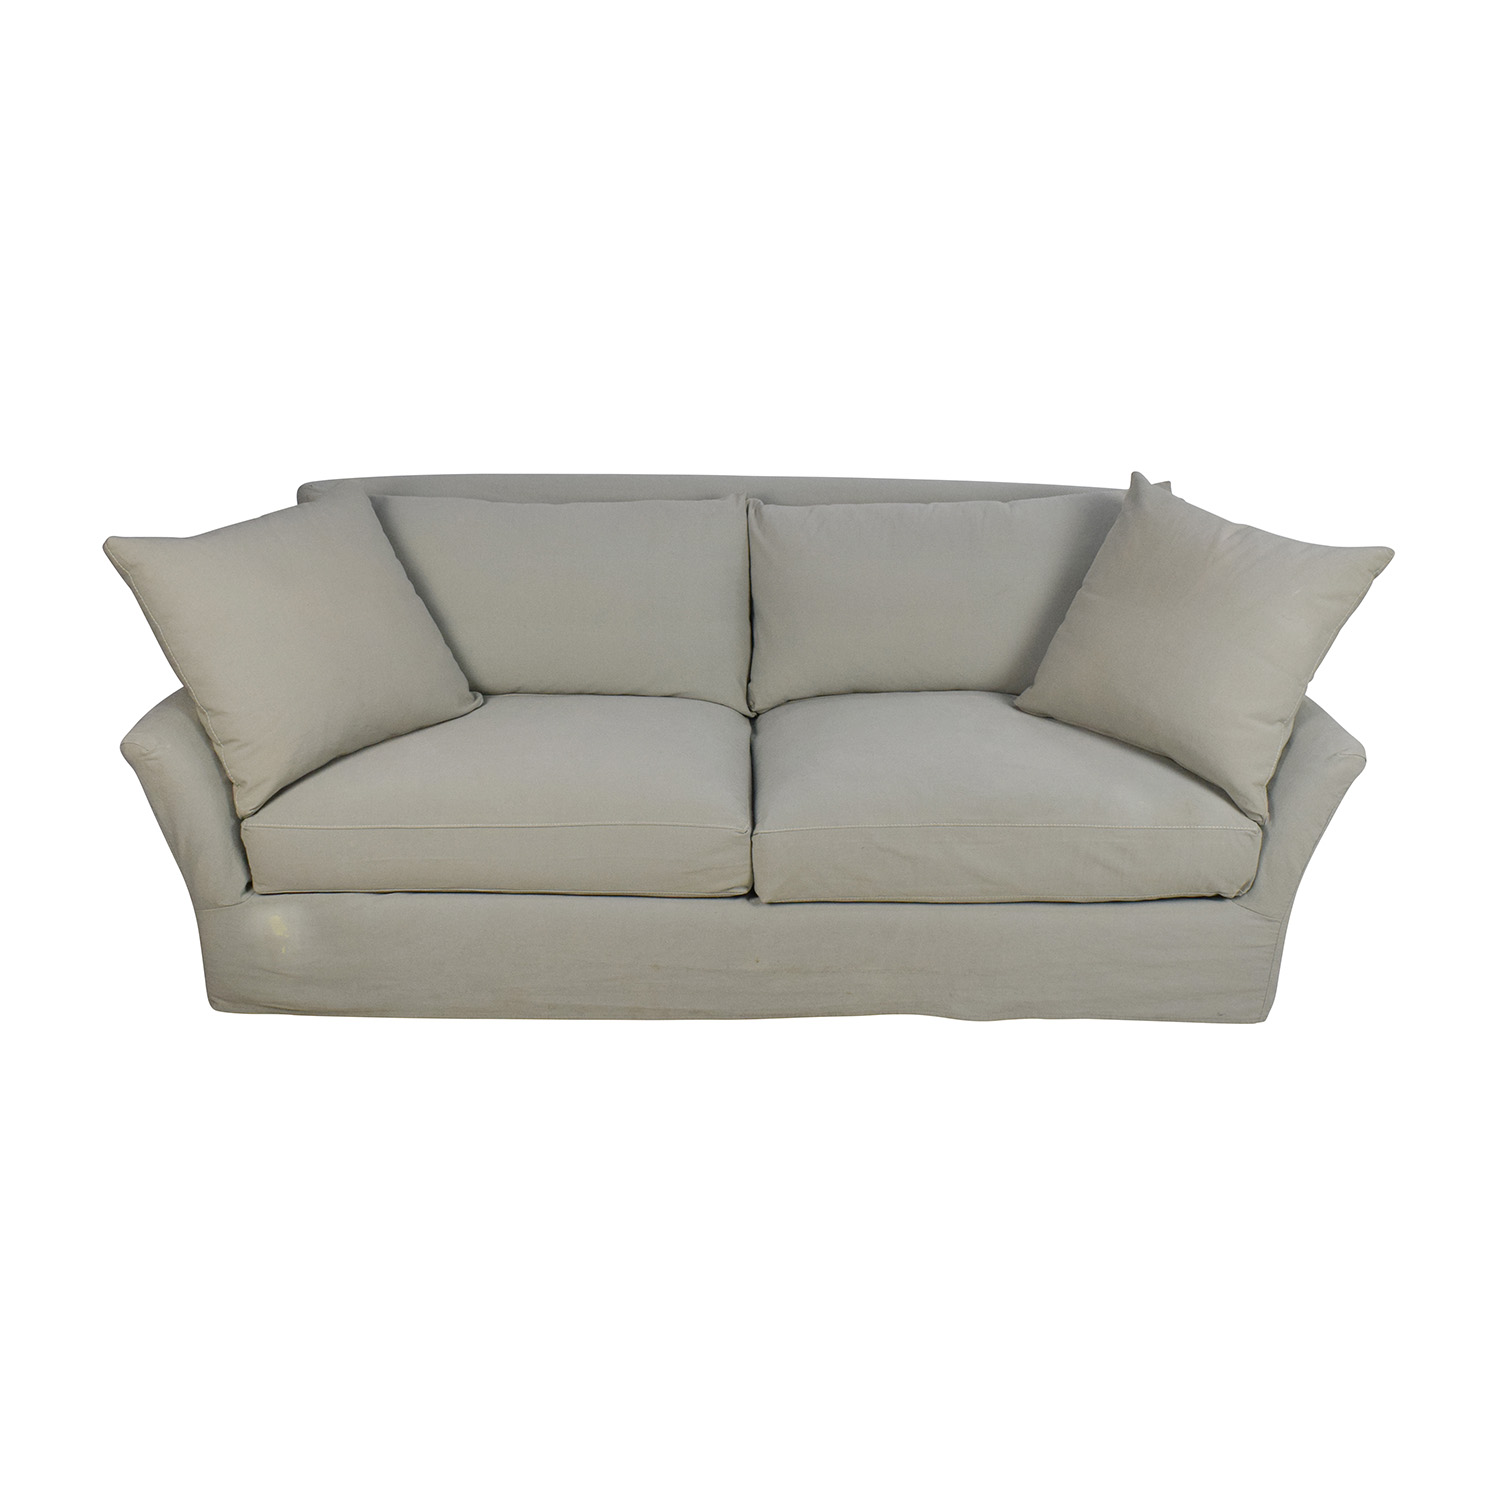 Crate and Barrel Crate & Barrel Willow Sage Green Sofa Sofas